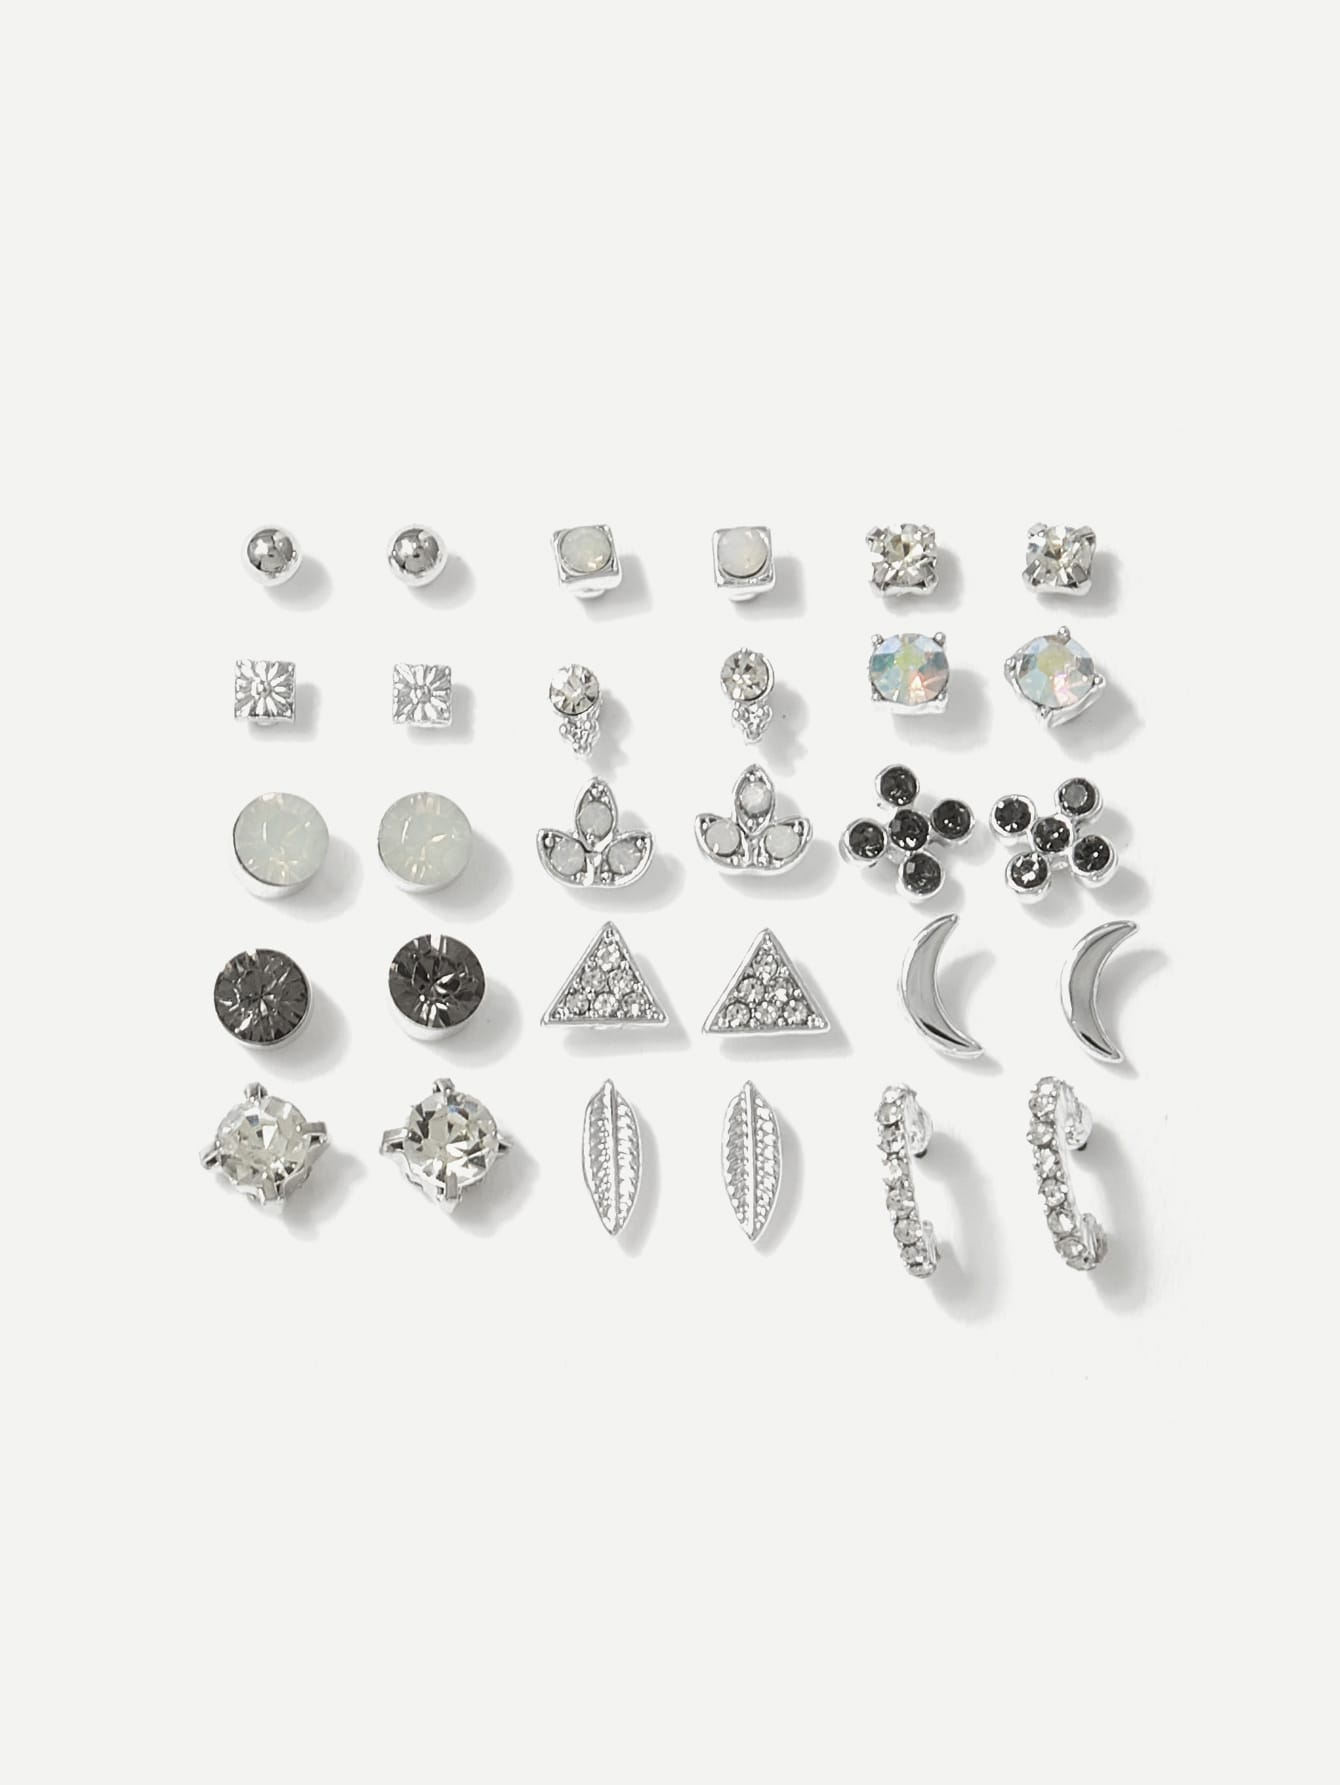 Grey Moon & Leaf Design Gemstone 15 Pairs Stud Earrings